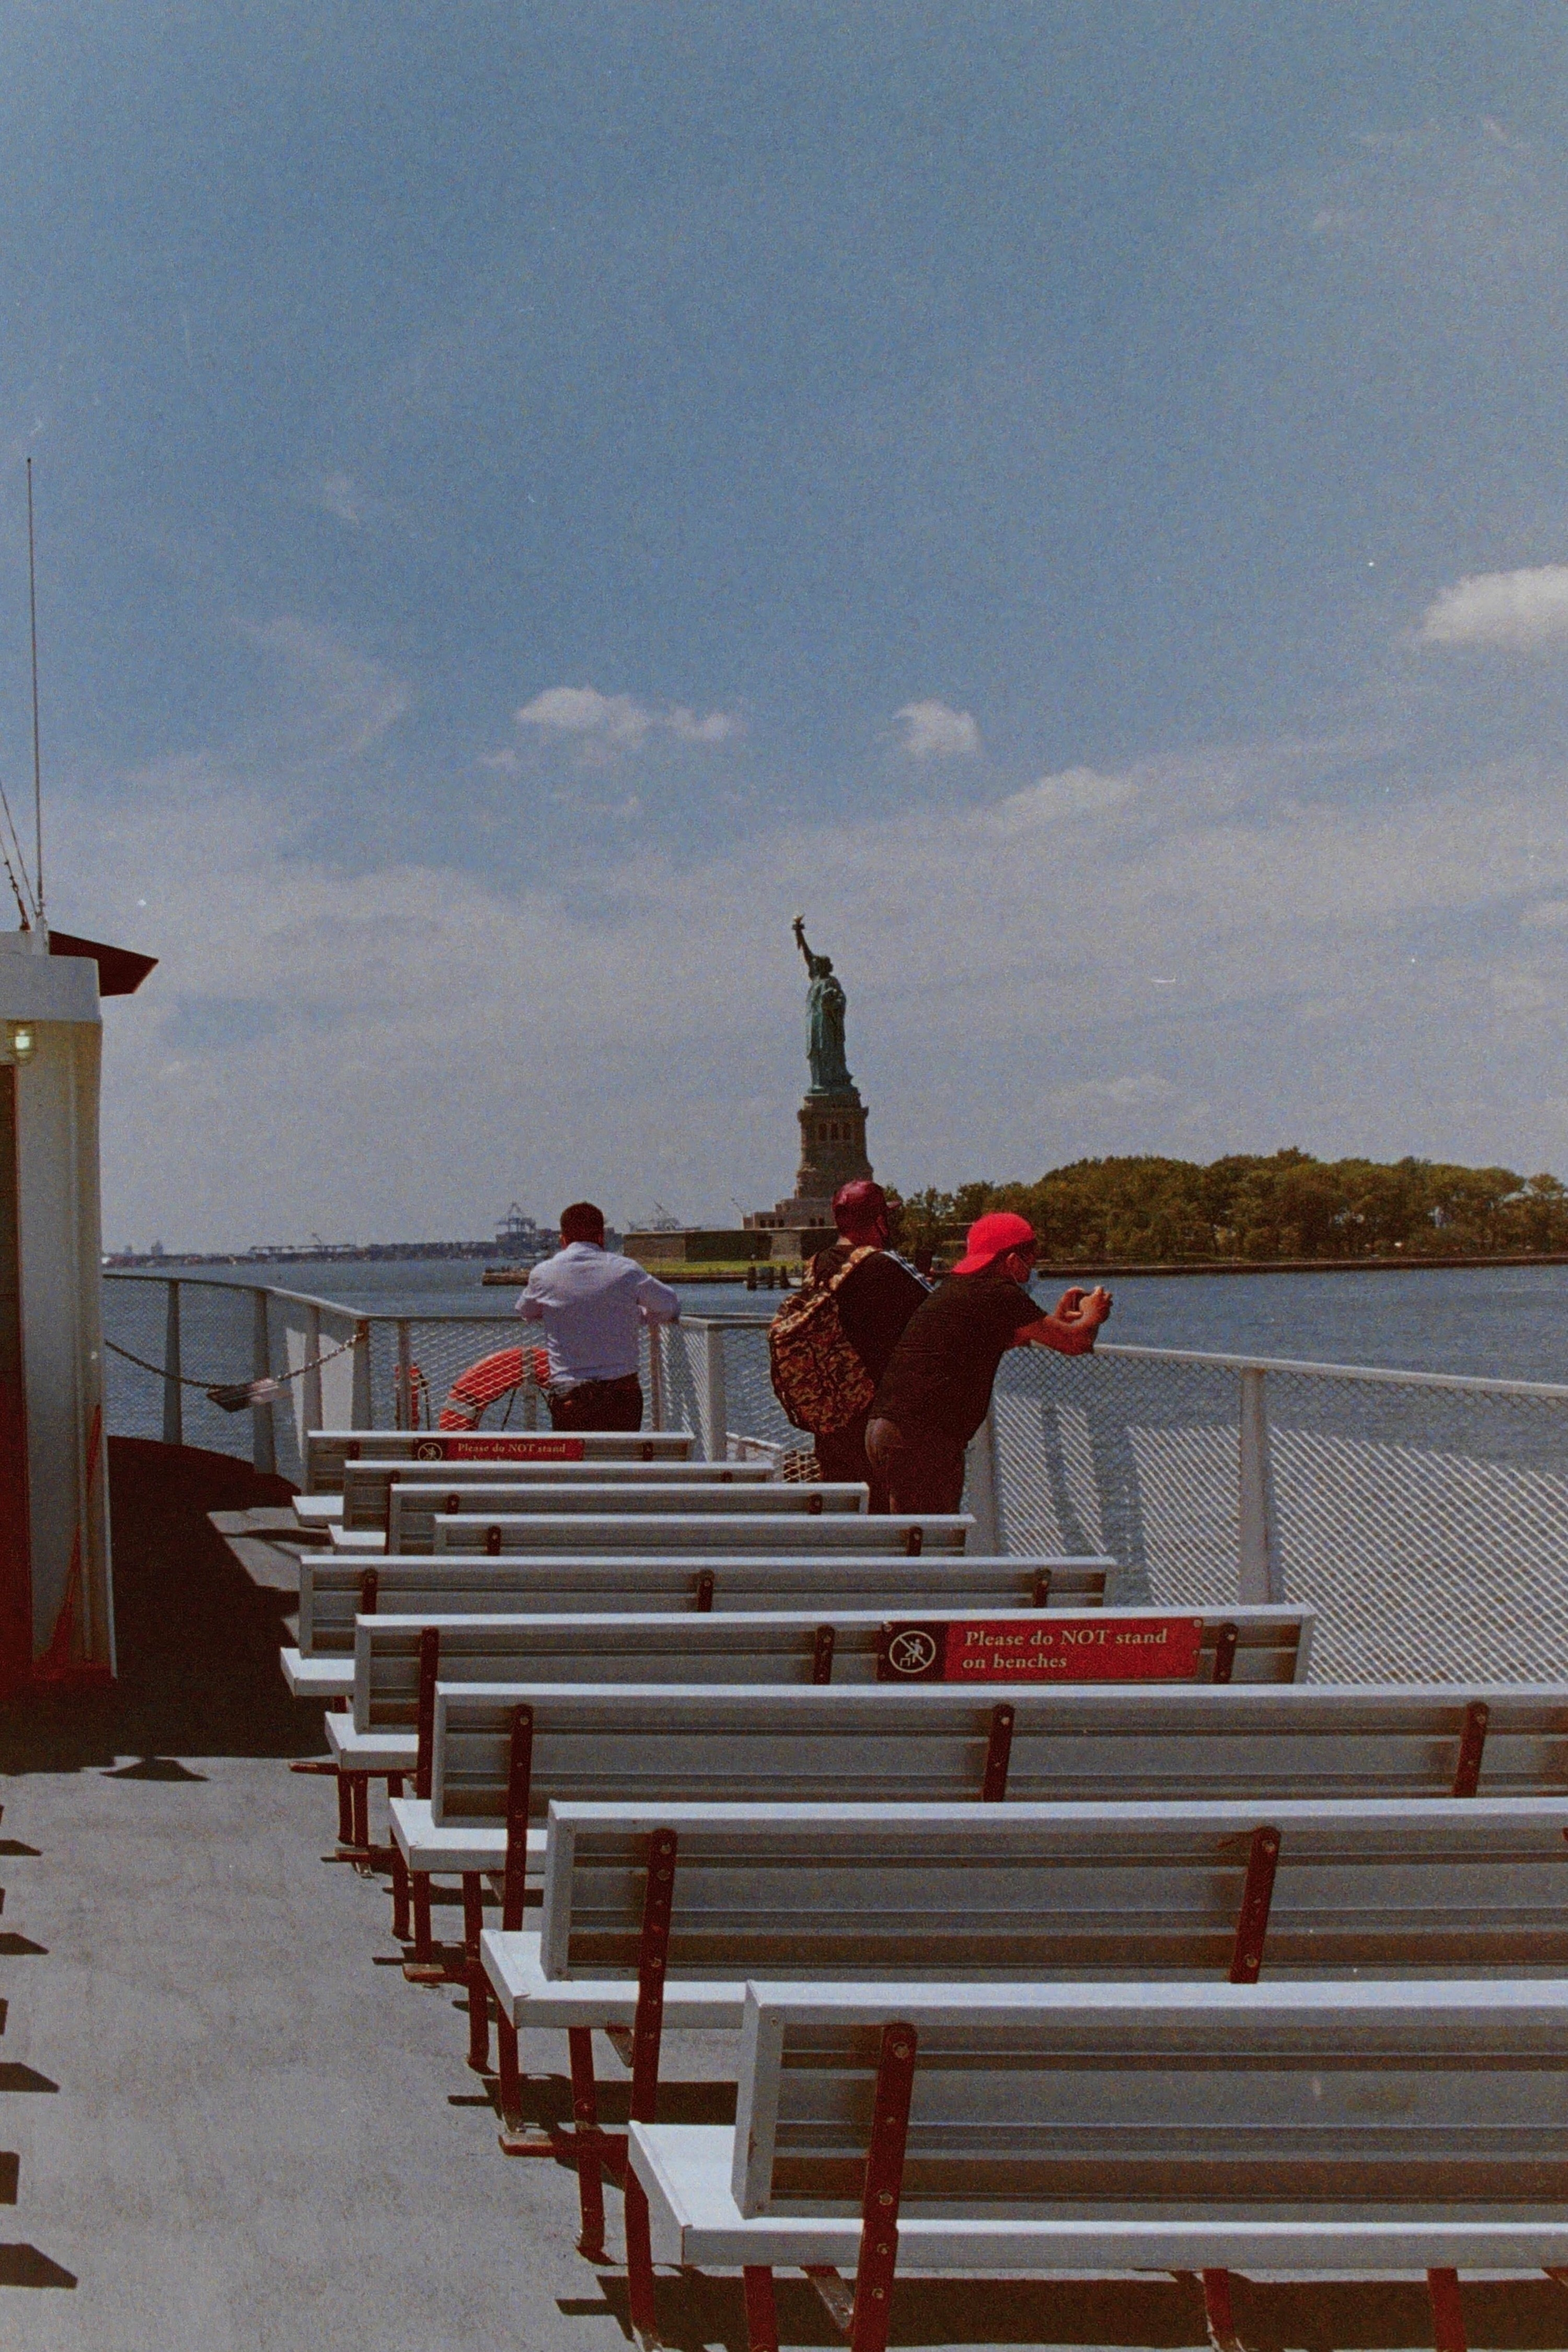 Three people, peering over the water at the Statue of Liberty, stand on a mostly empty ferry